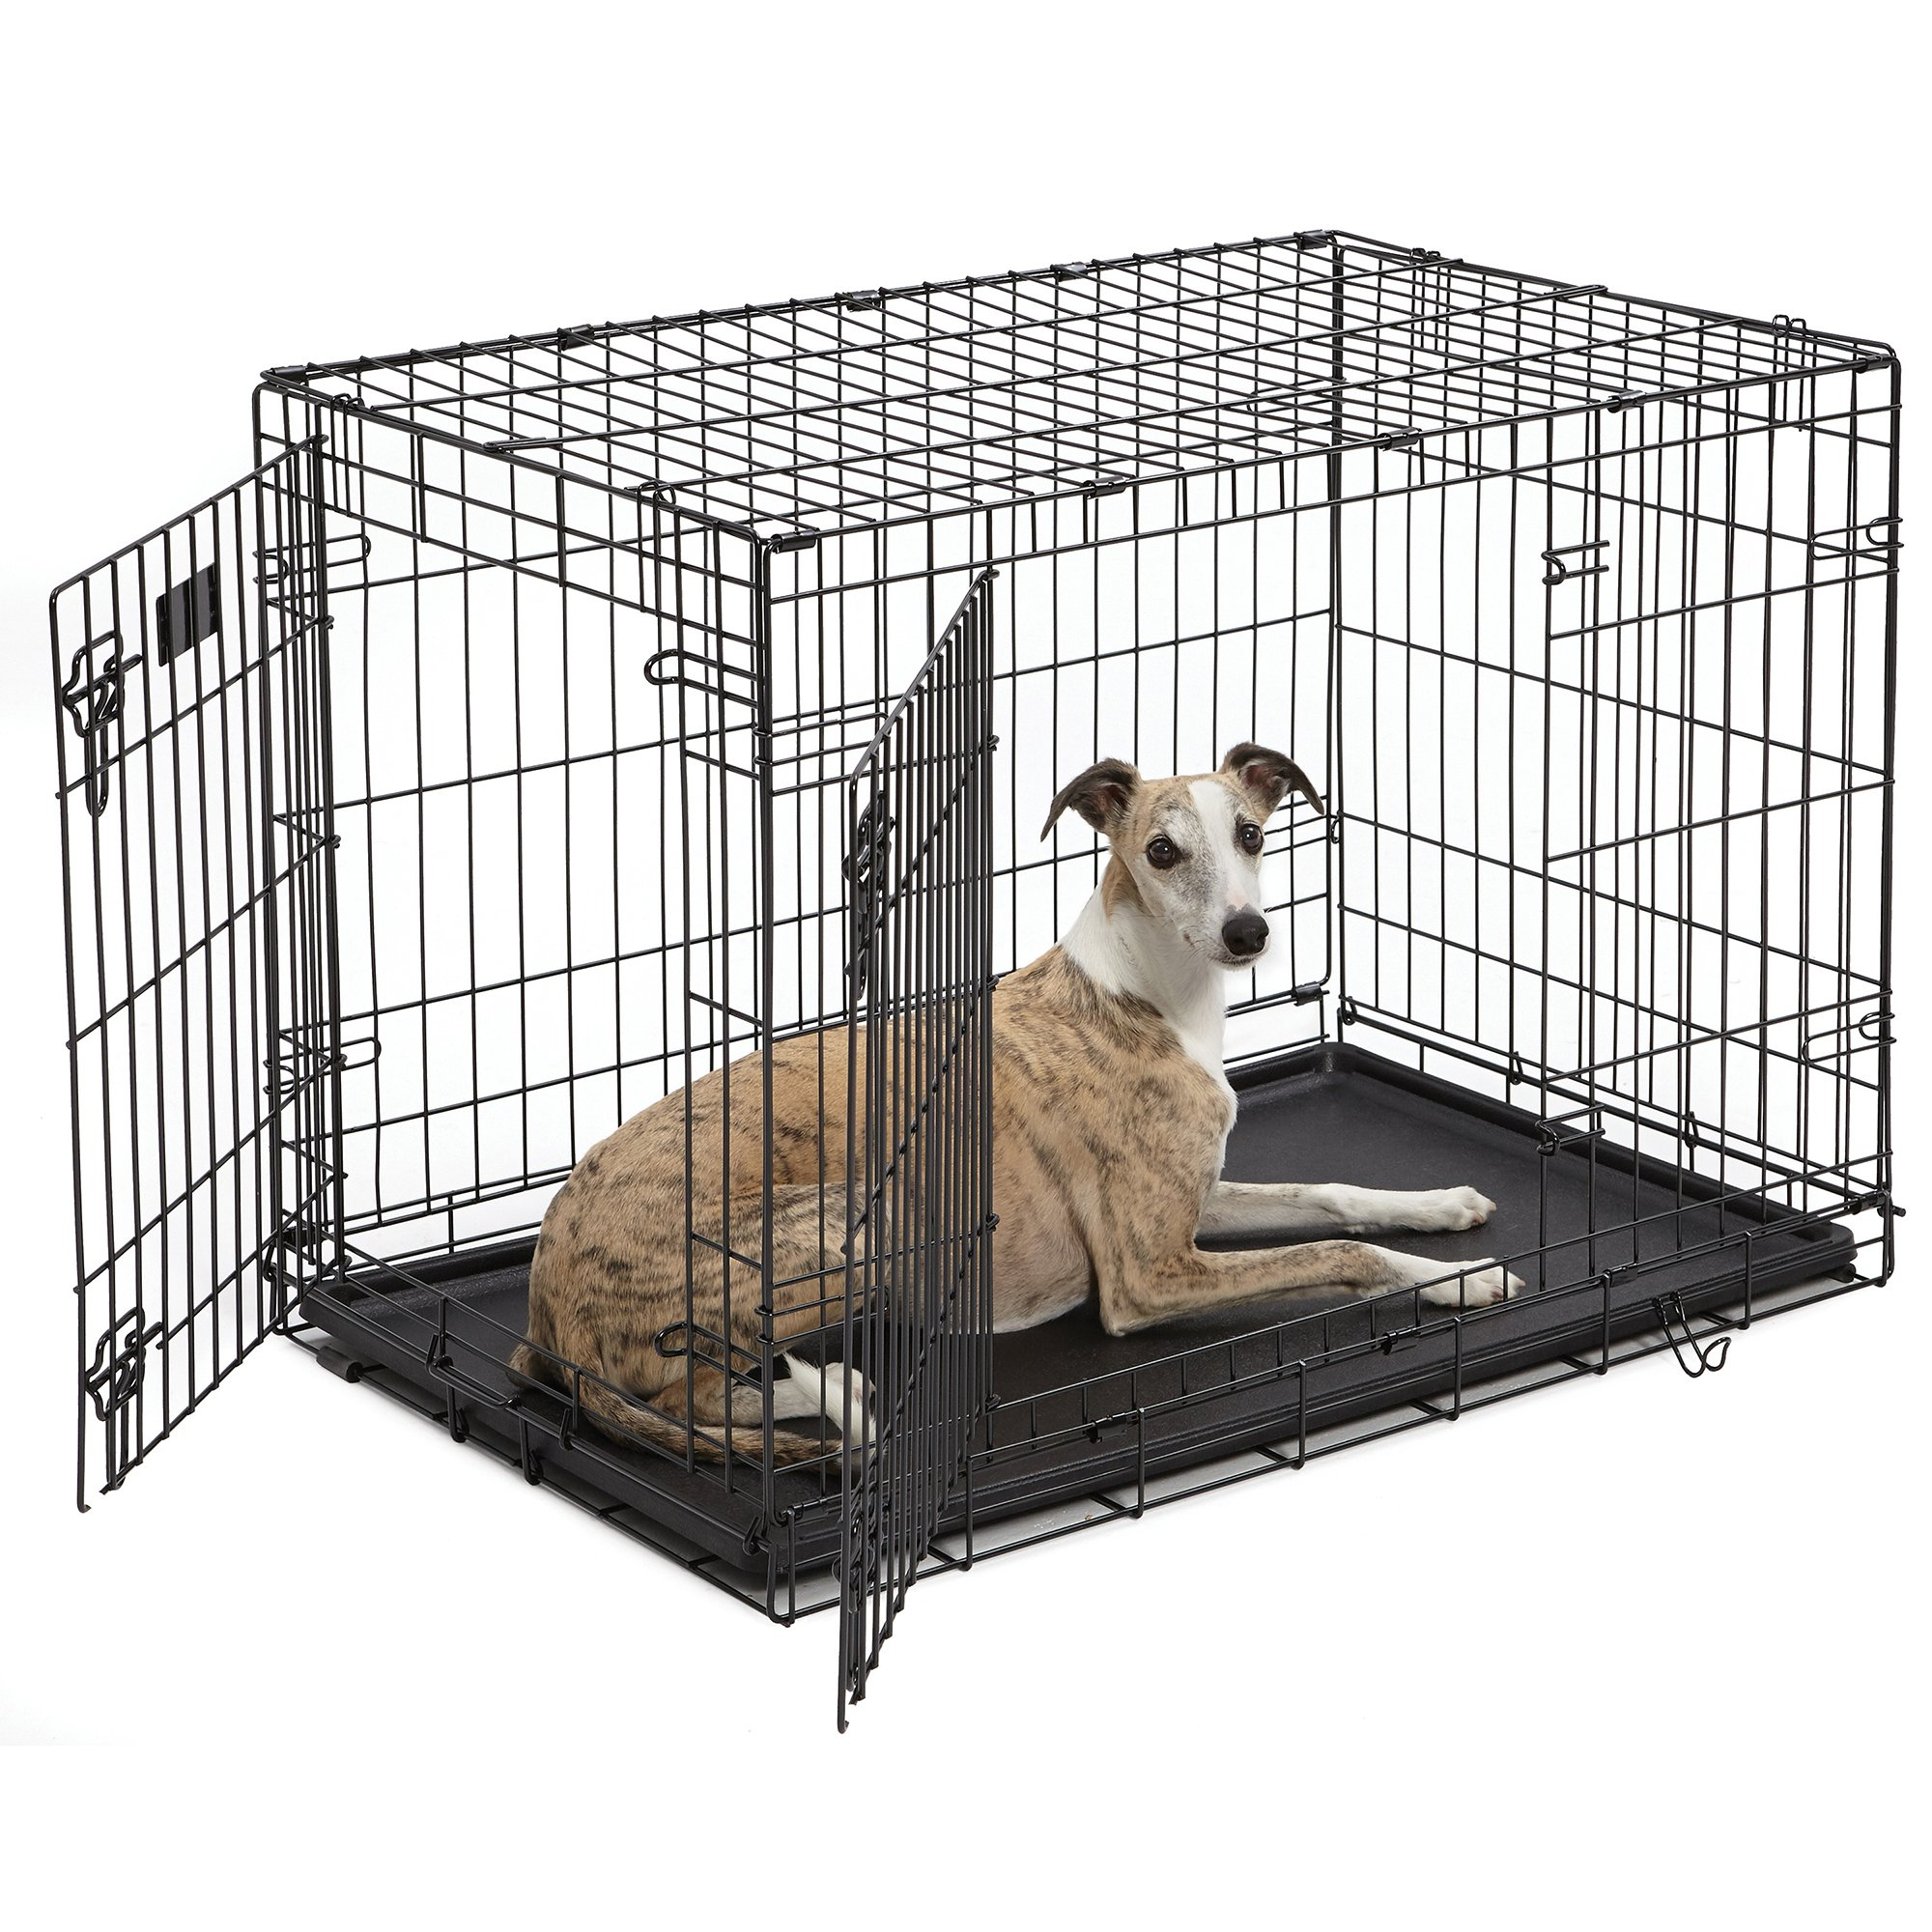 Midwest iCrate Double Door Folding Dog Crate 36 L X 23 W X 25 H MediumLarge Black